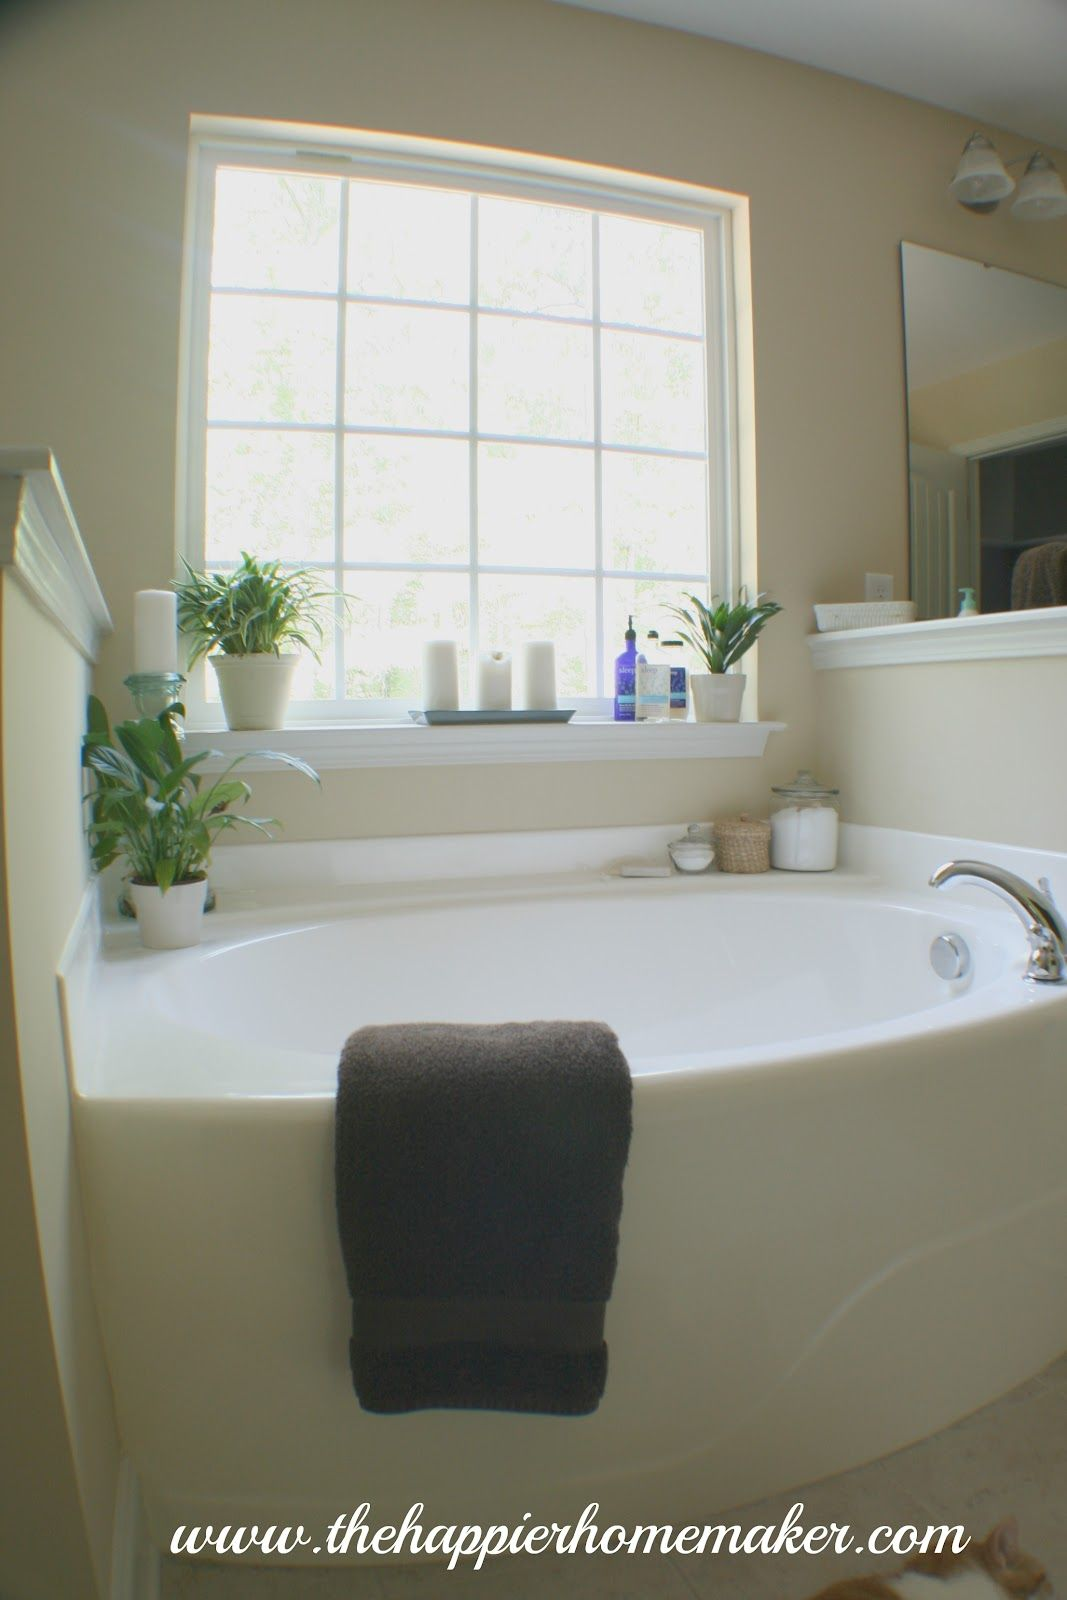 Decorating around bathtub on pinterest bathtub decor for How to decorate a garden tub bathroom